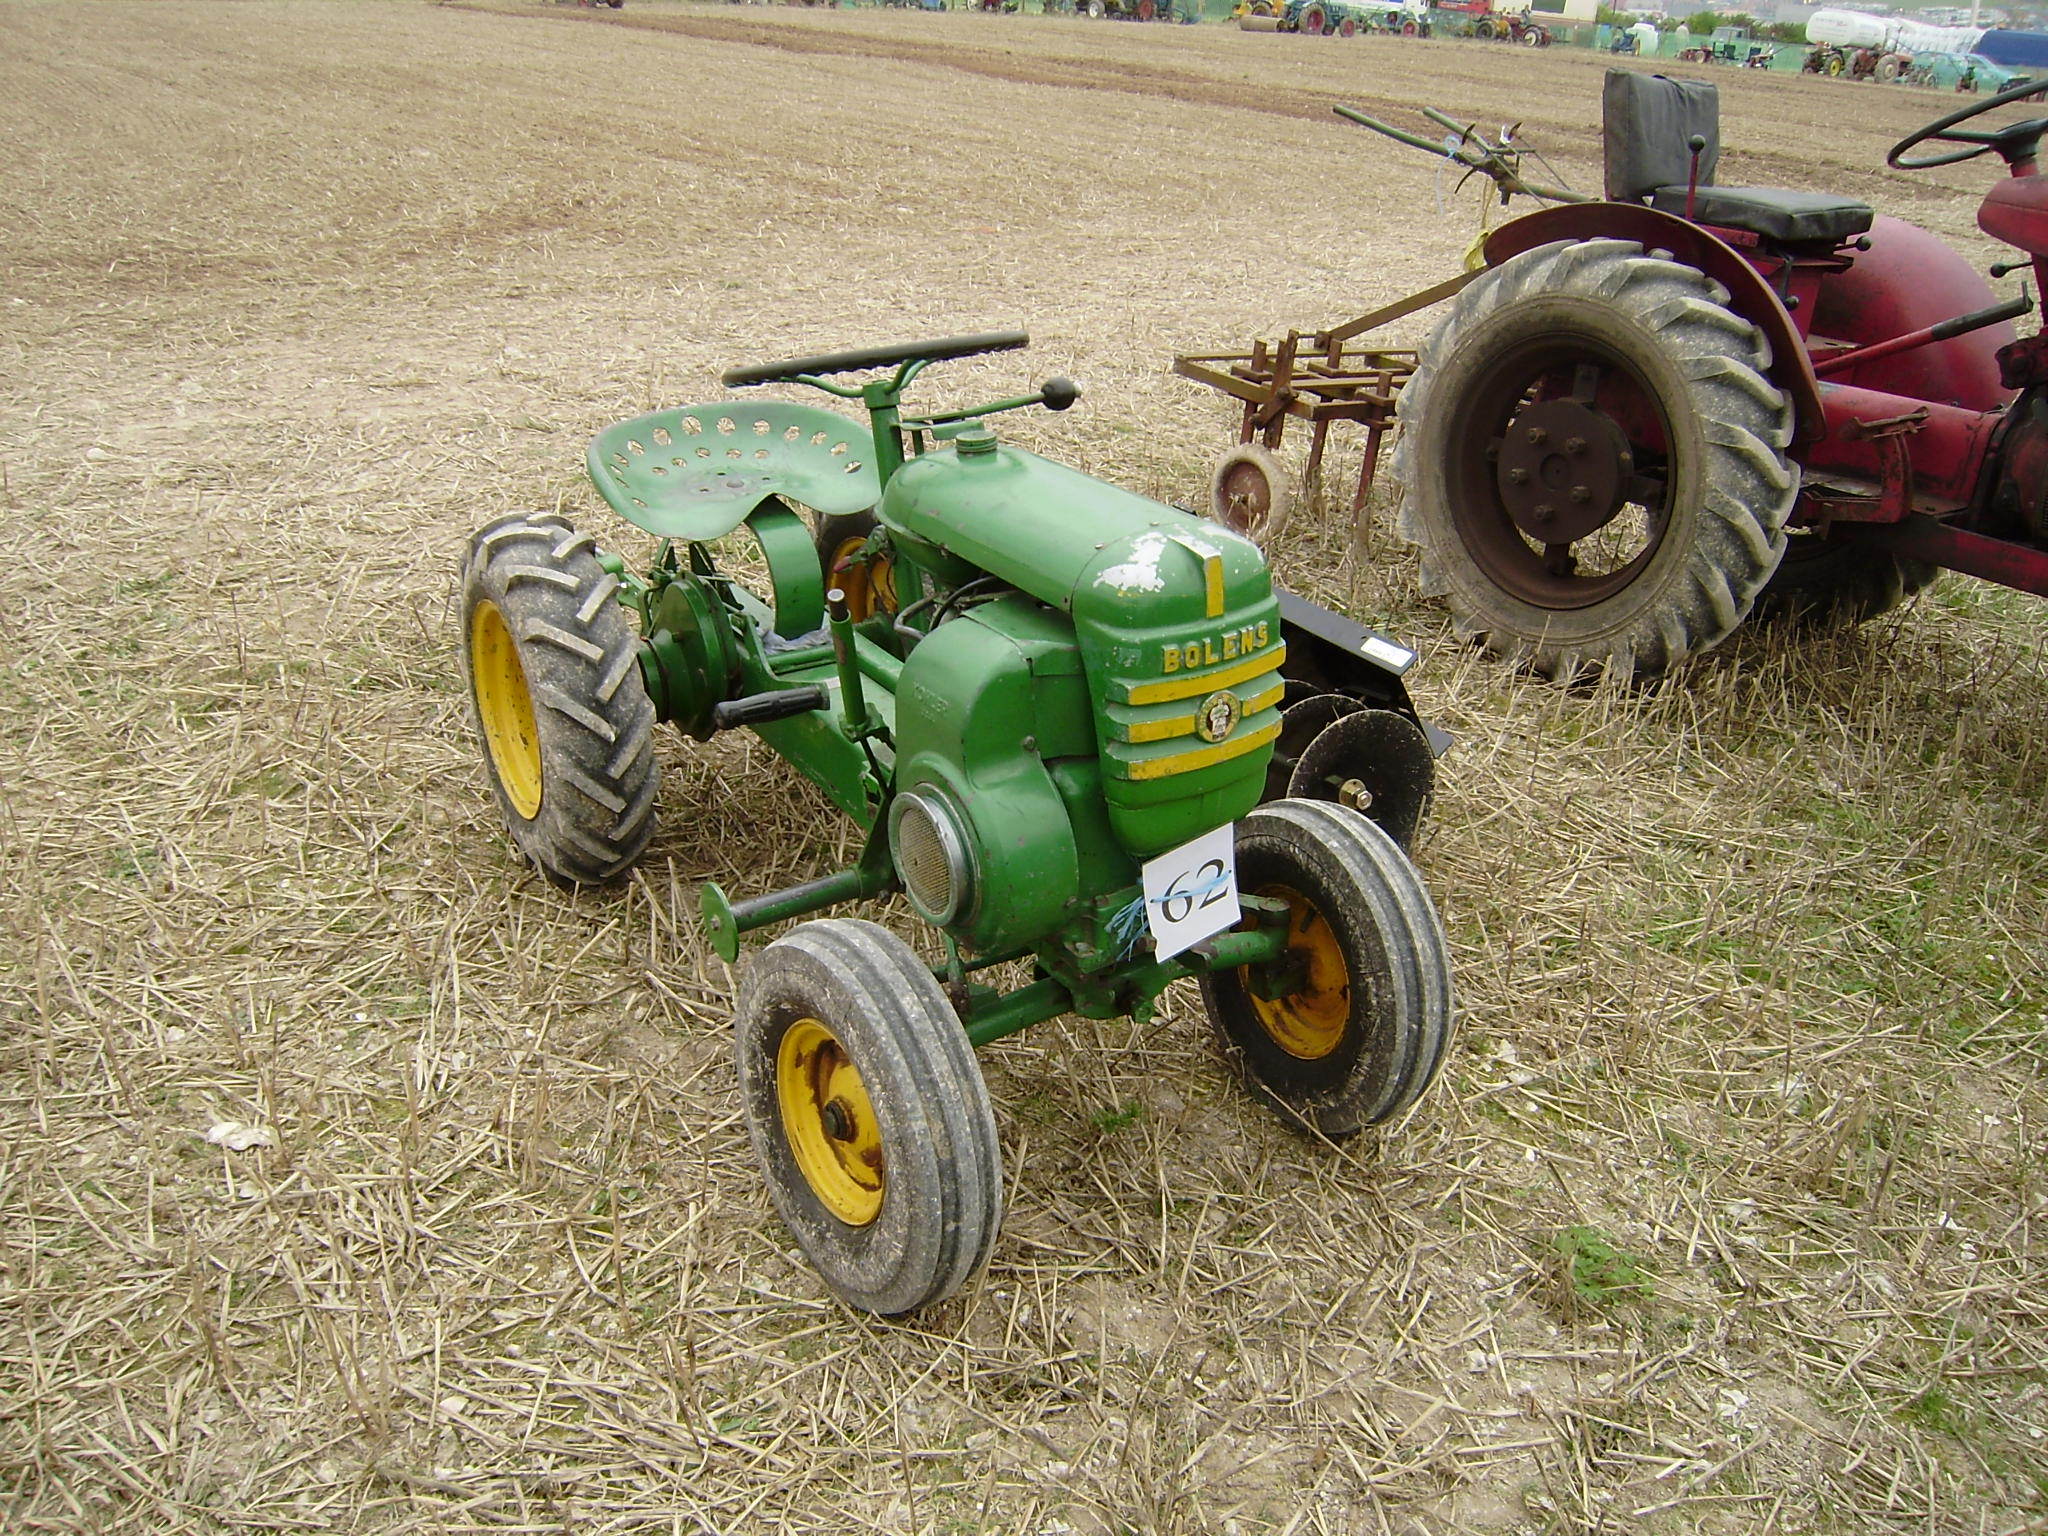 Bolens - Tractor & Construction Plant Wiki - The classic ...